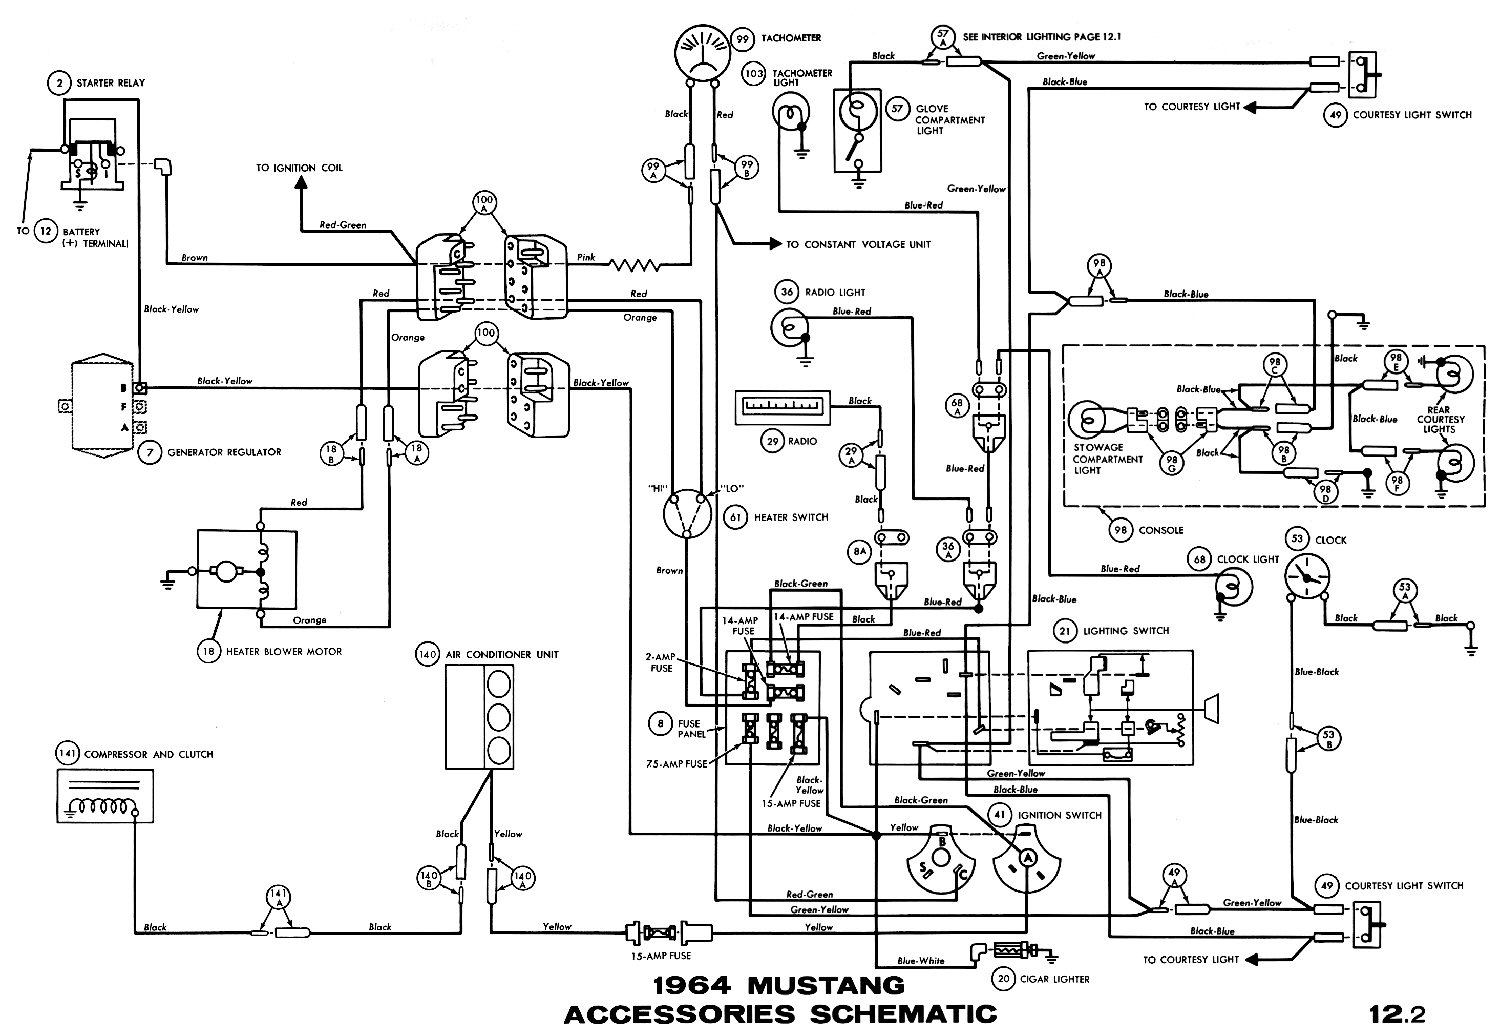 1964 Mustang Wiring Diagrams - Average Joe Restoration